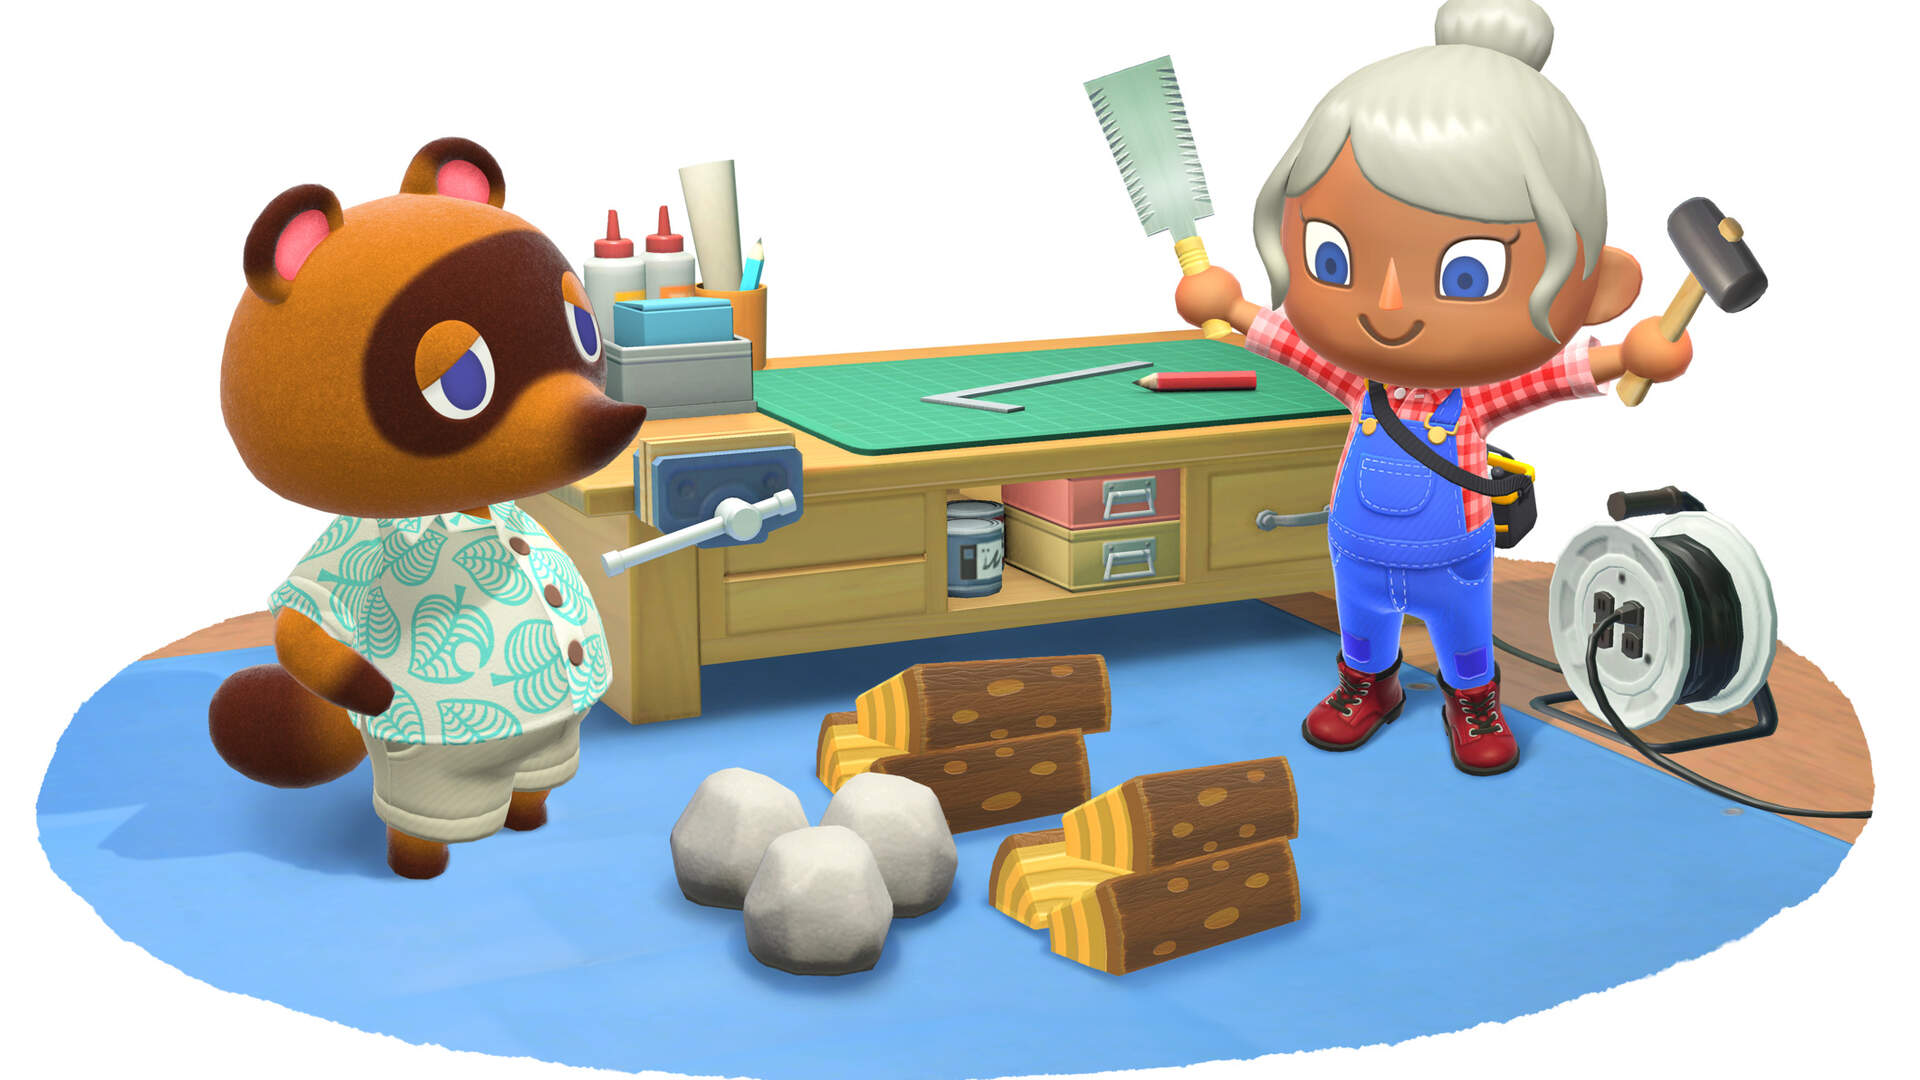 New Details for Animal Crossing: New Horizons' Museum and Messages in a Bottle Revealed